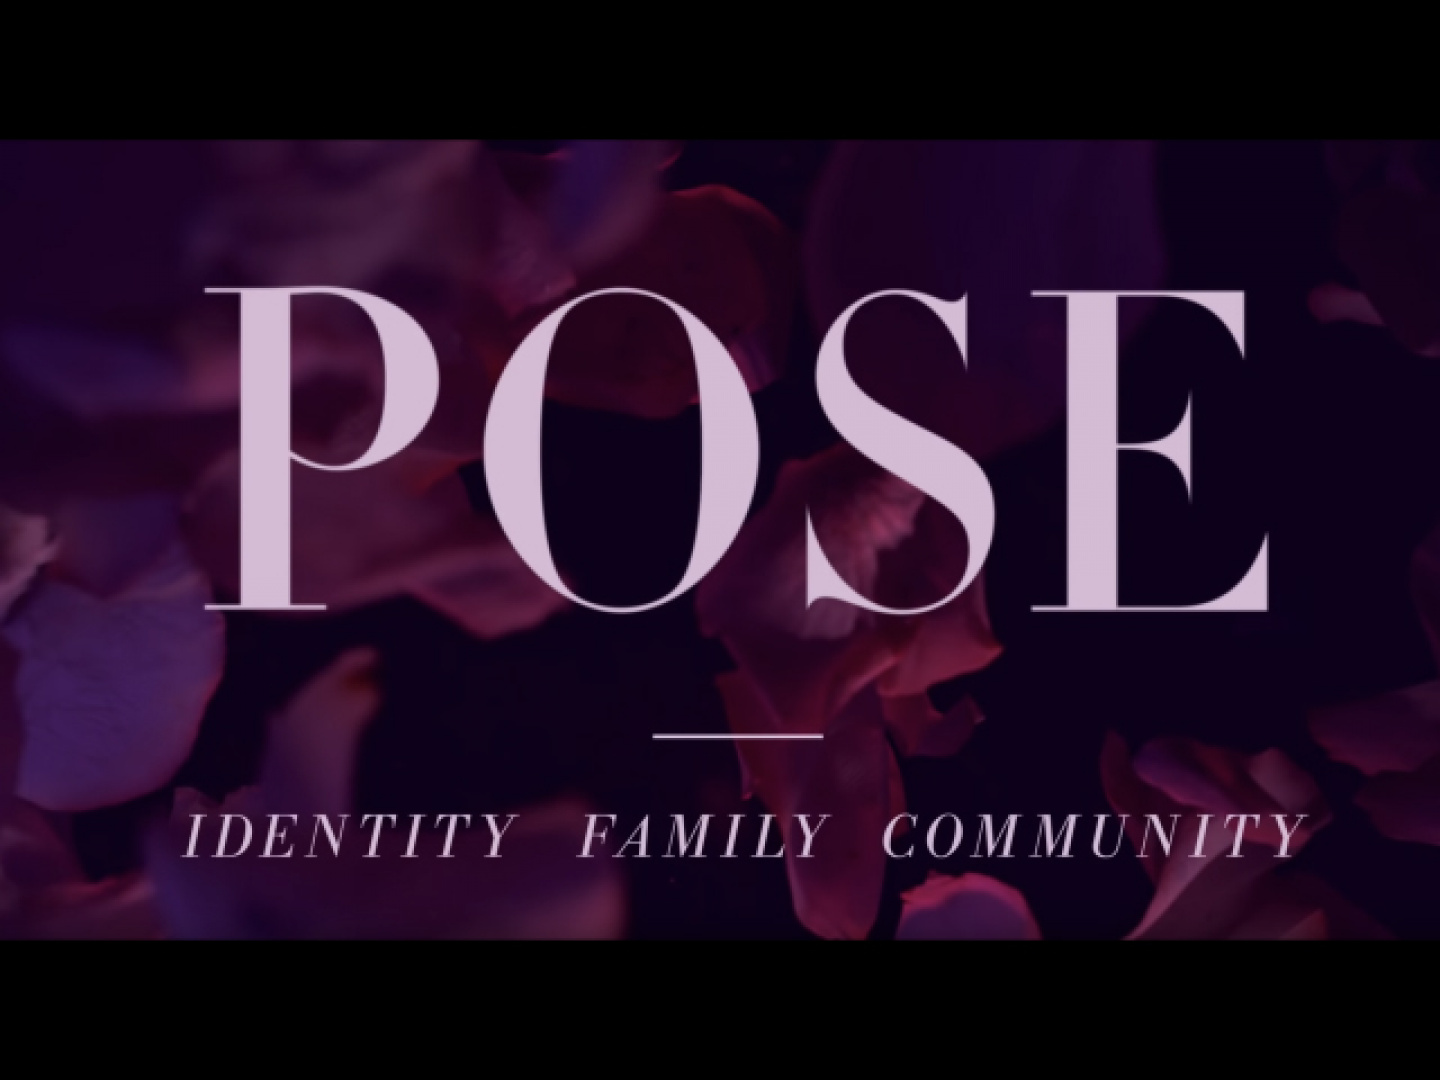 Pose S2: Identity, Family, Community: The Plague Thumbnail